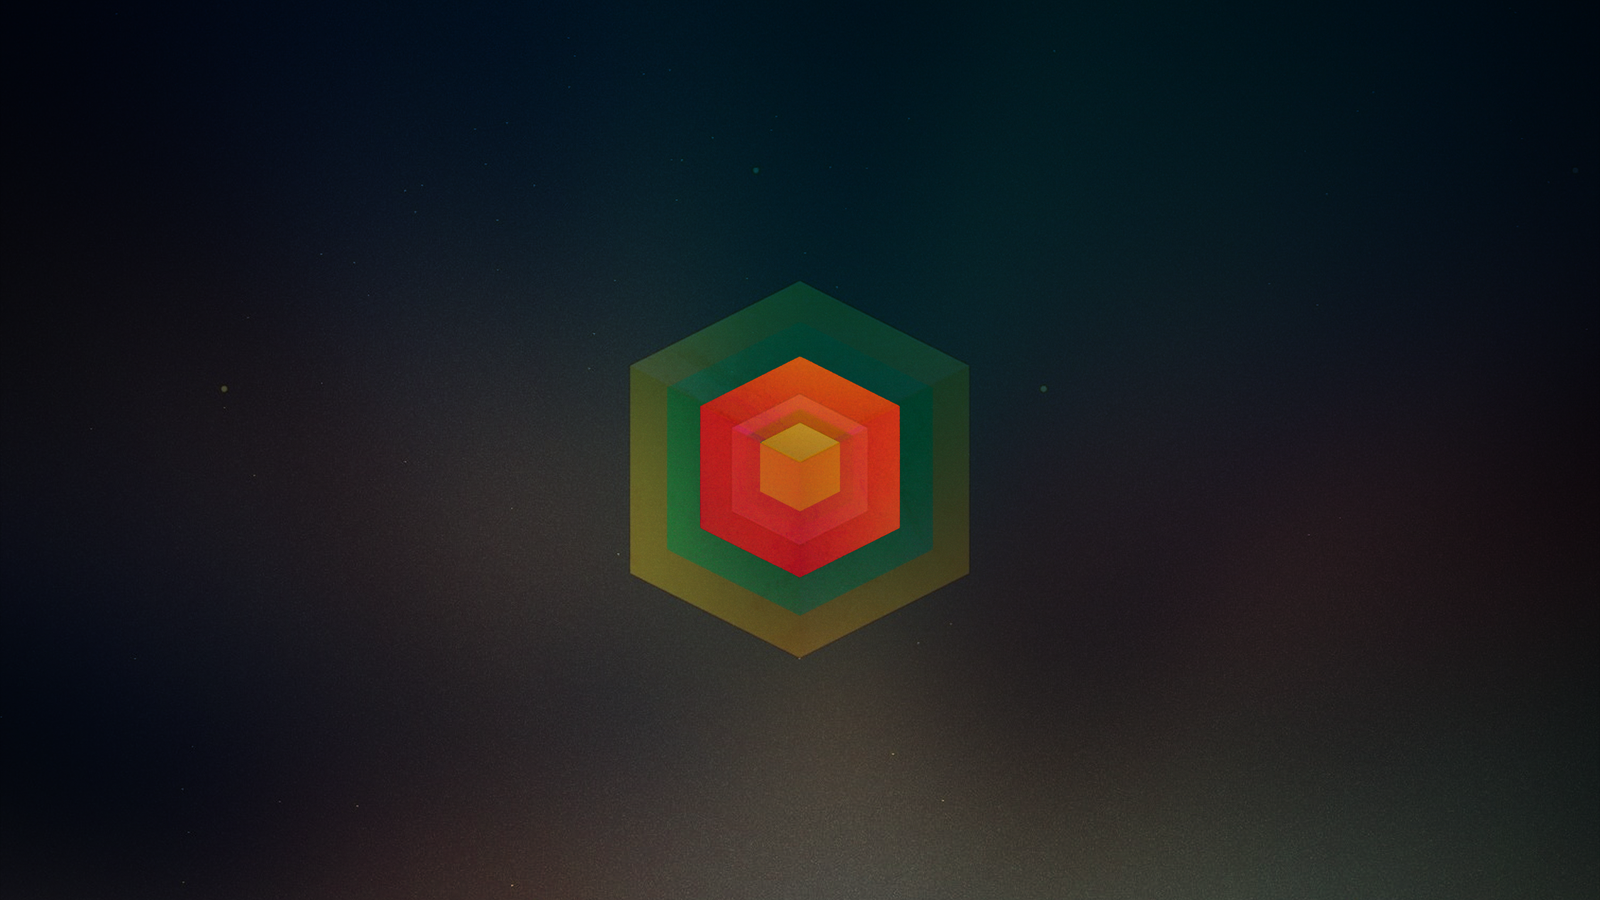 Tesseract minimal wallpaper by skyehunter5 on deviantart for Minimal art reddit